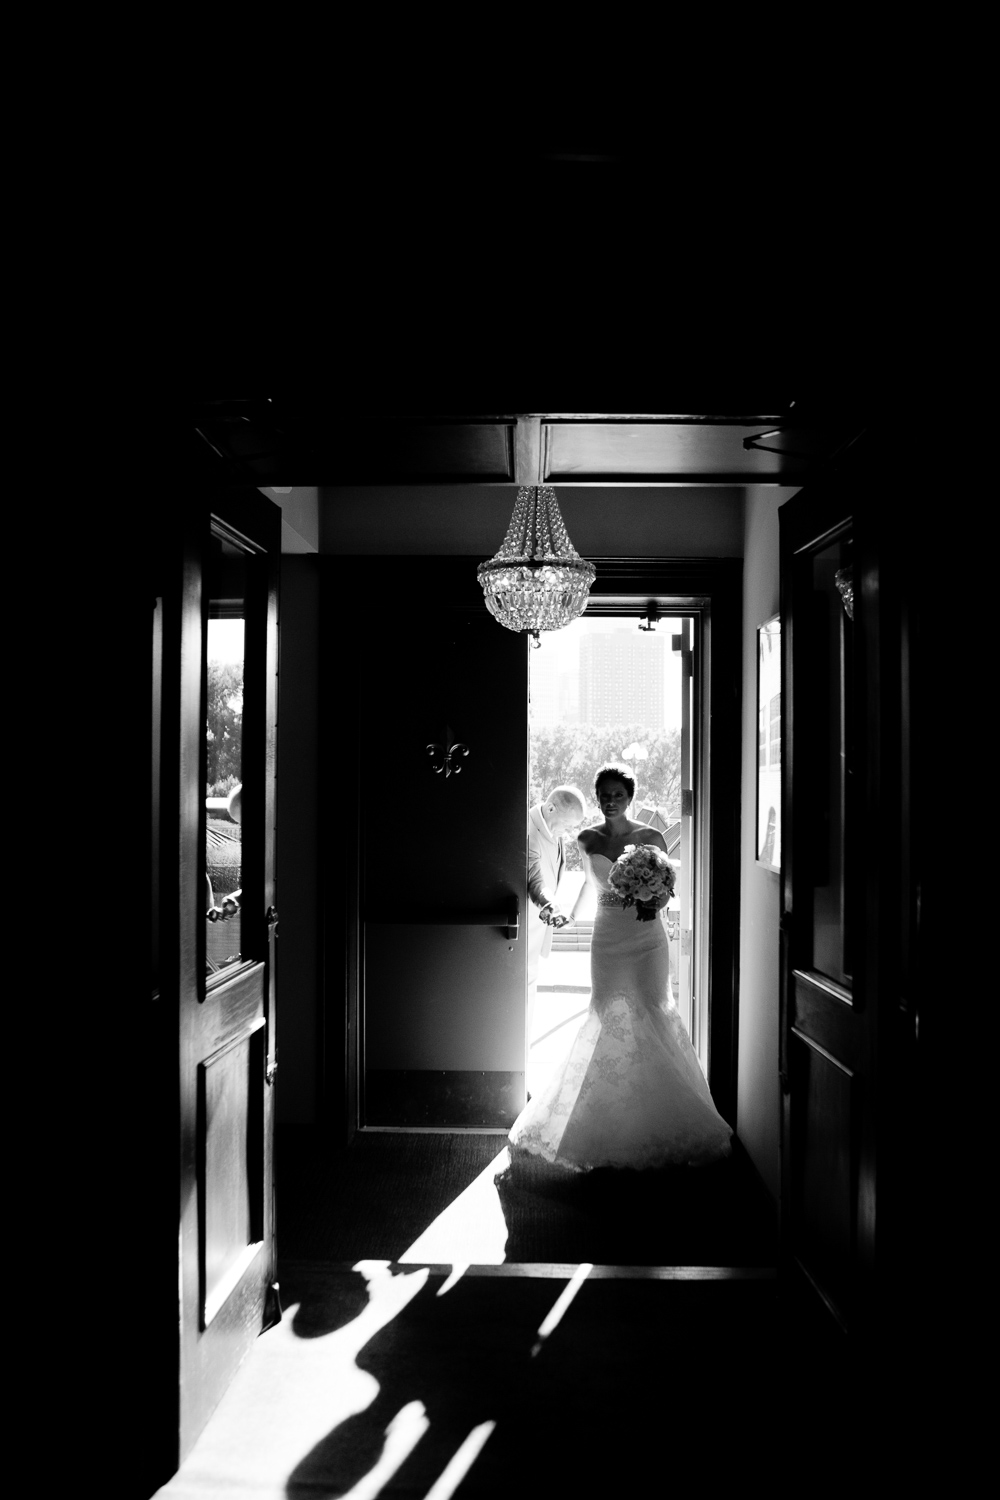 clewell minneapolis wedding photographer-106377392348243263.jpg